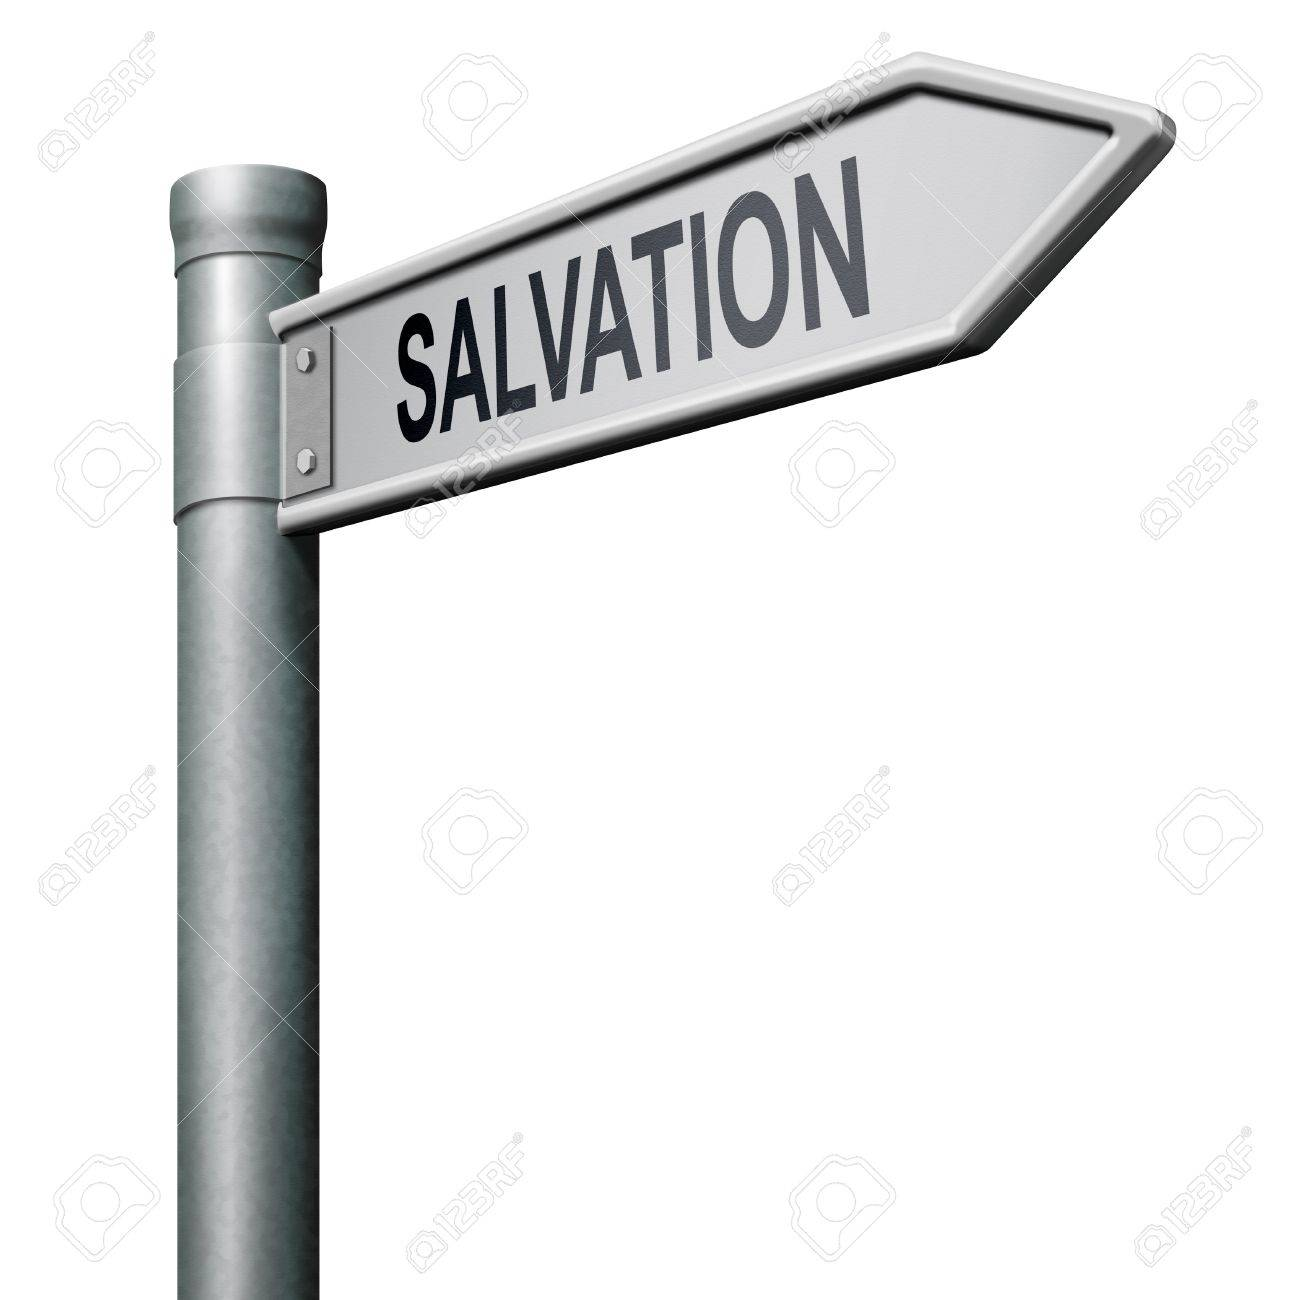 way to salvation follow jesus and god to be rescued save your soul Stock Photo - 8406391